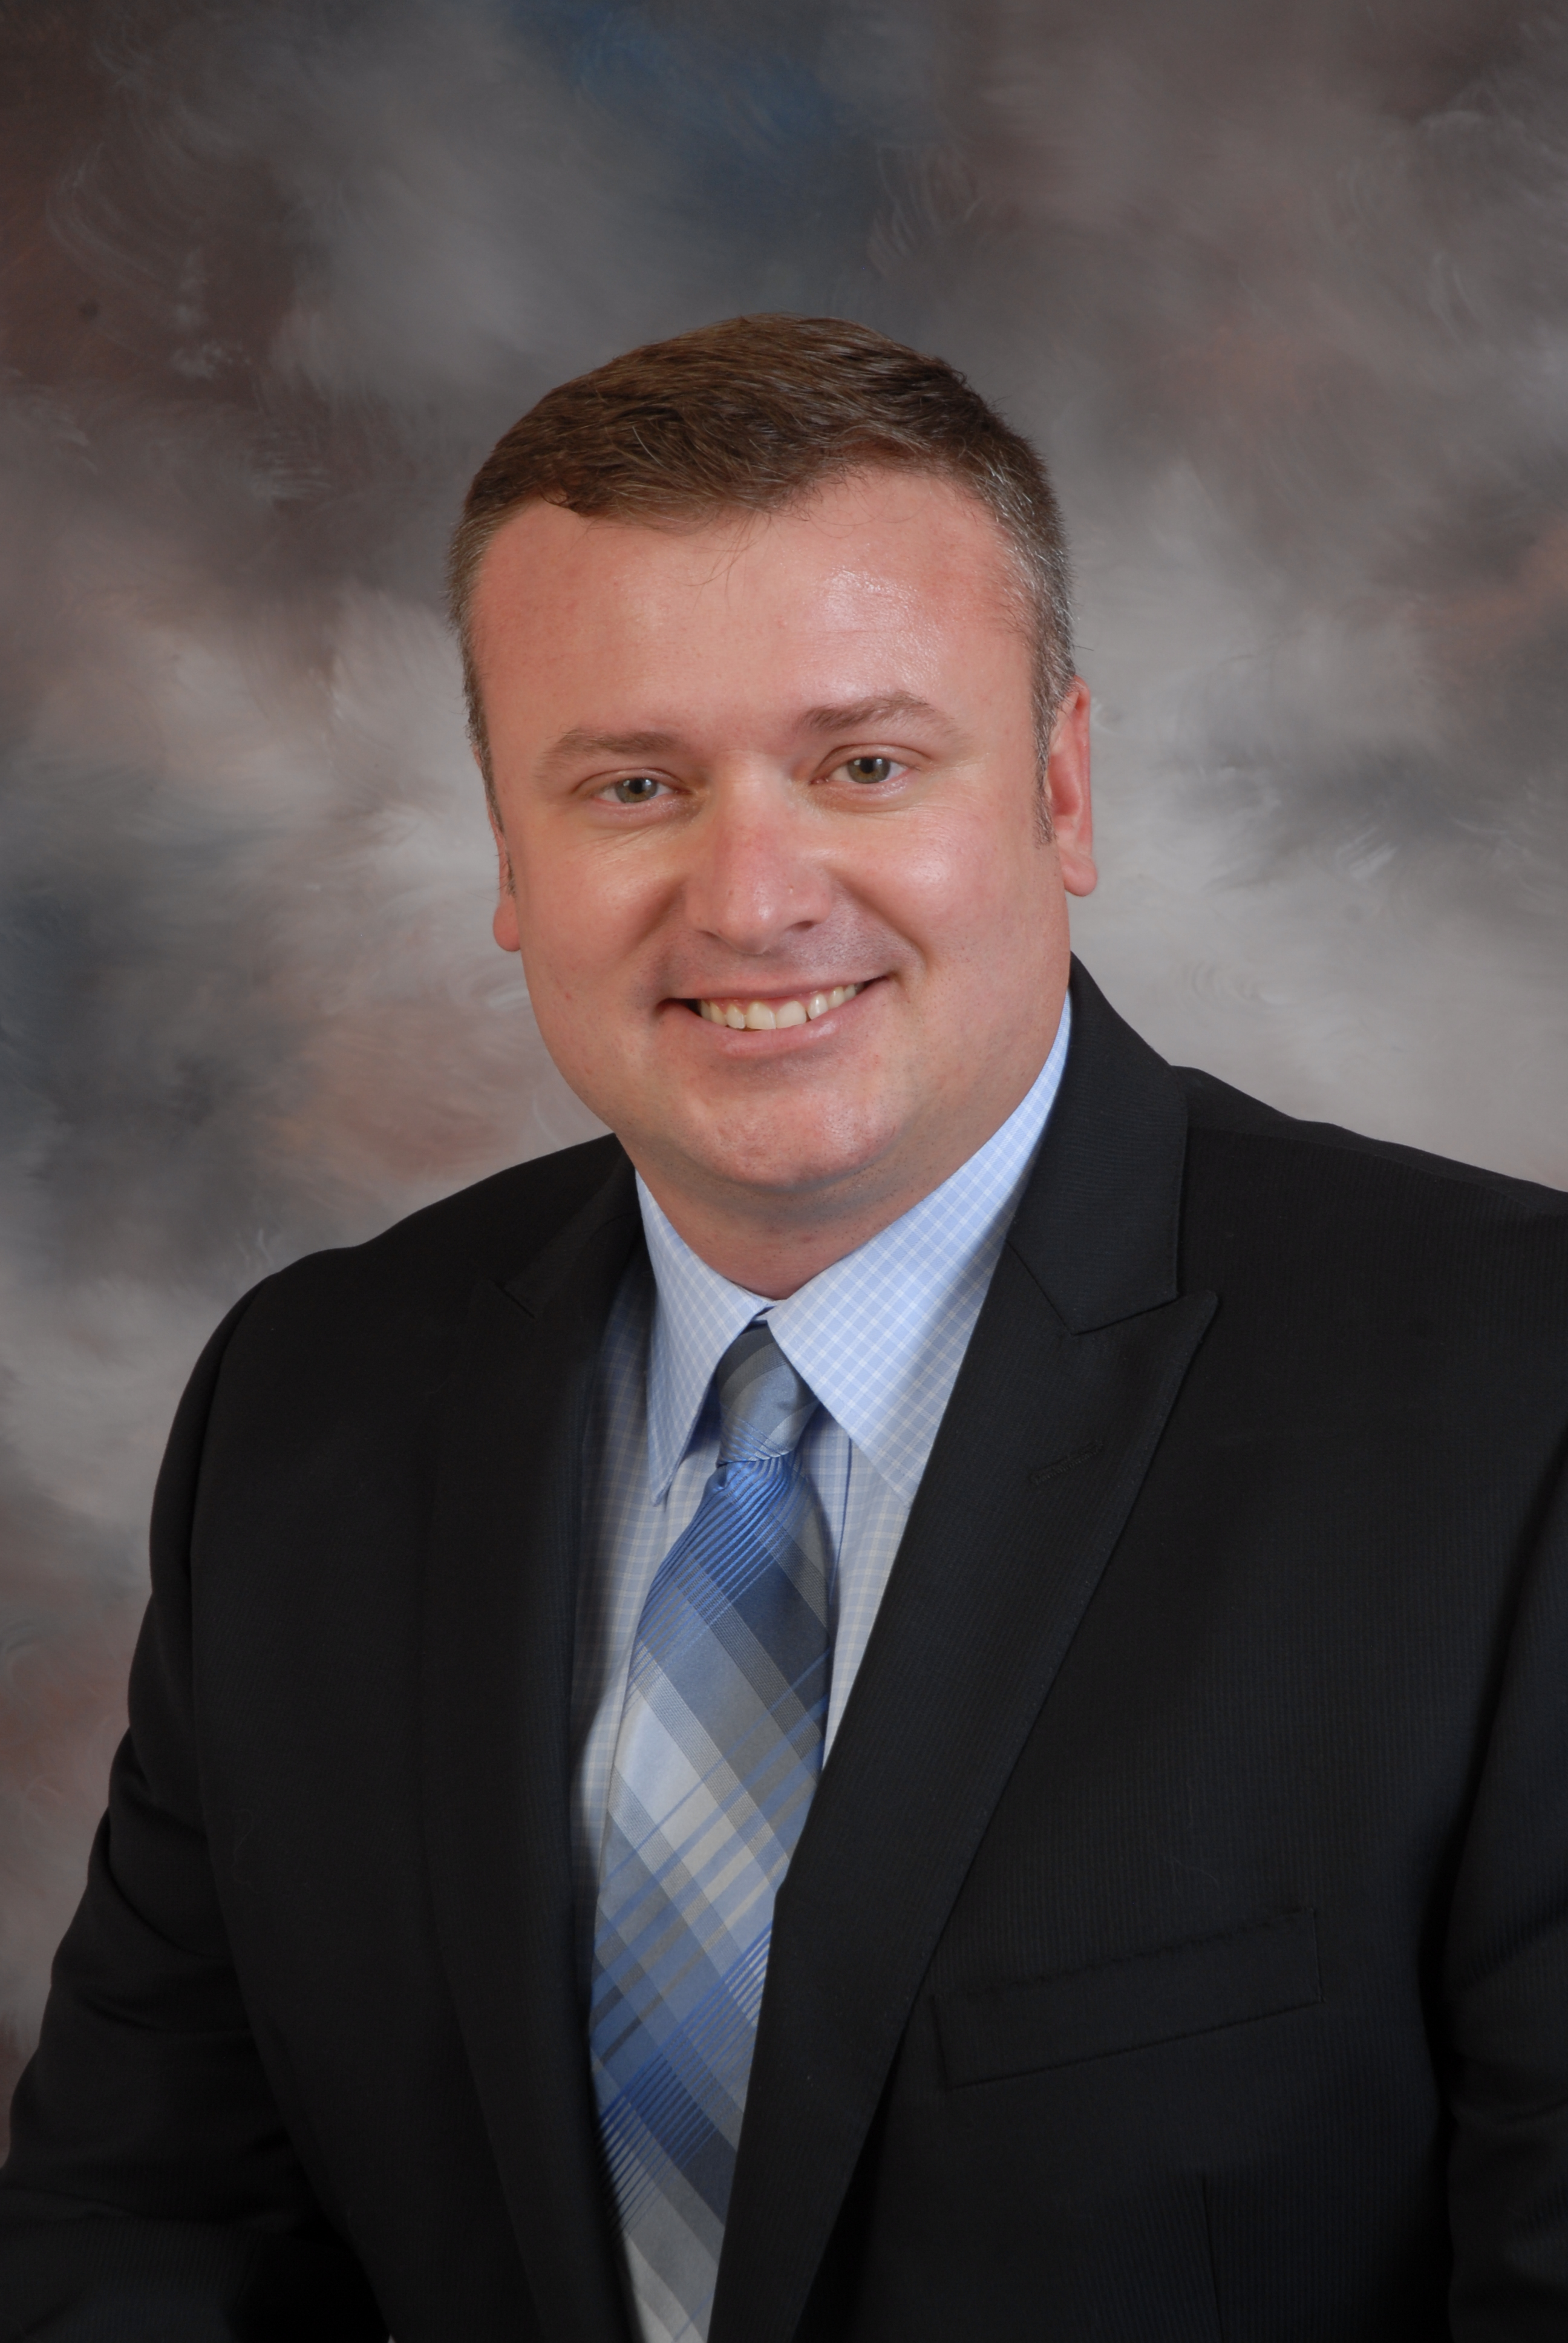 TRK Connection has announced that it has hired Jeremy Burcham as Executive Vice President of Sales